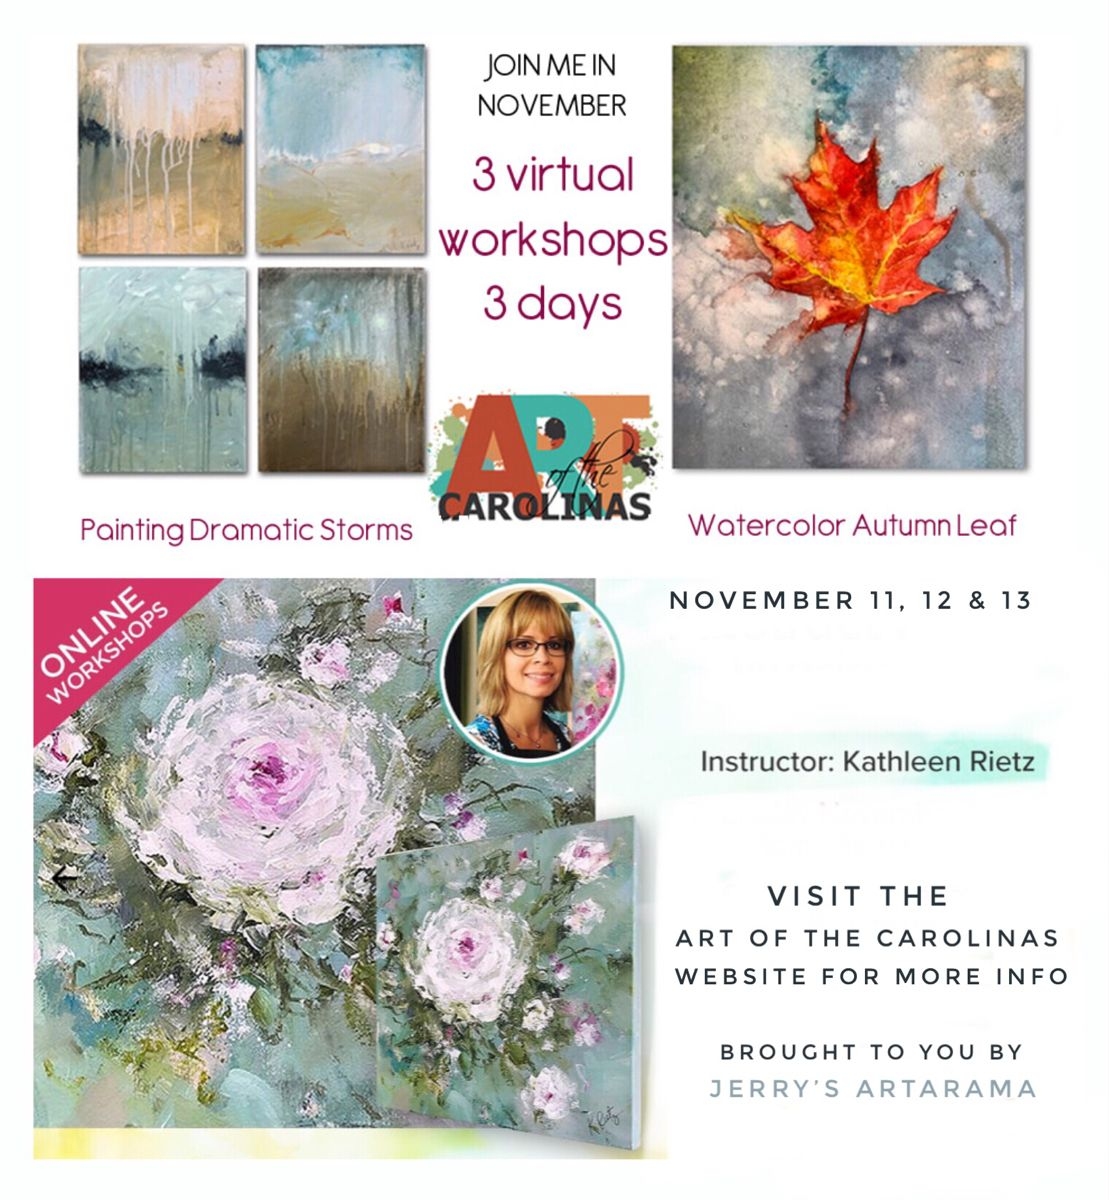 3 virtual art workshops coming in November #diy #artworkshops #watercolorarts #abstractpaintings #watercolor #floralpainting #onlineartcourses #acrylicpaintingtechniques